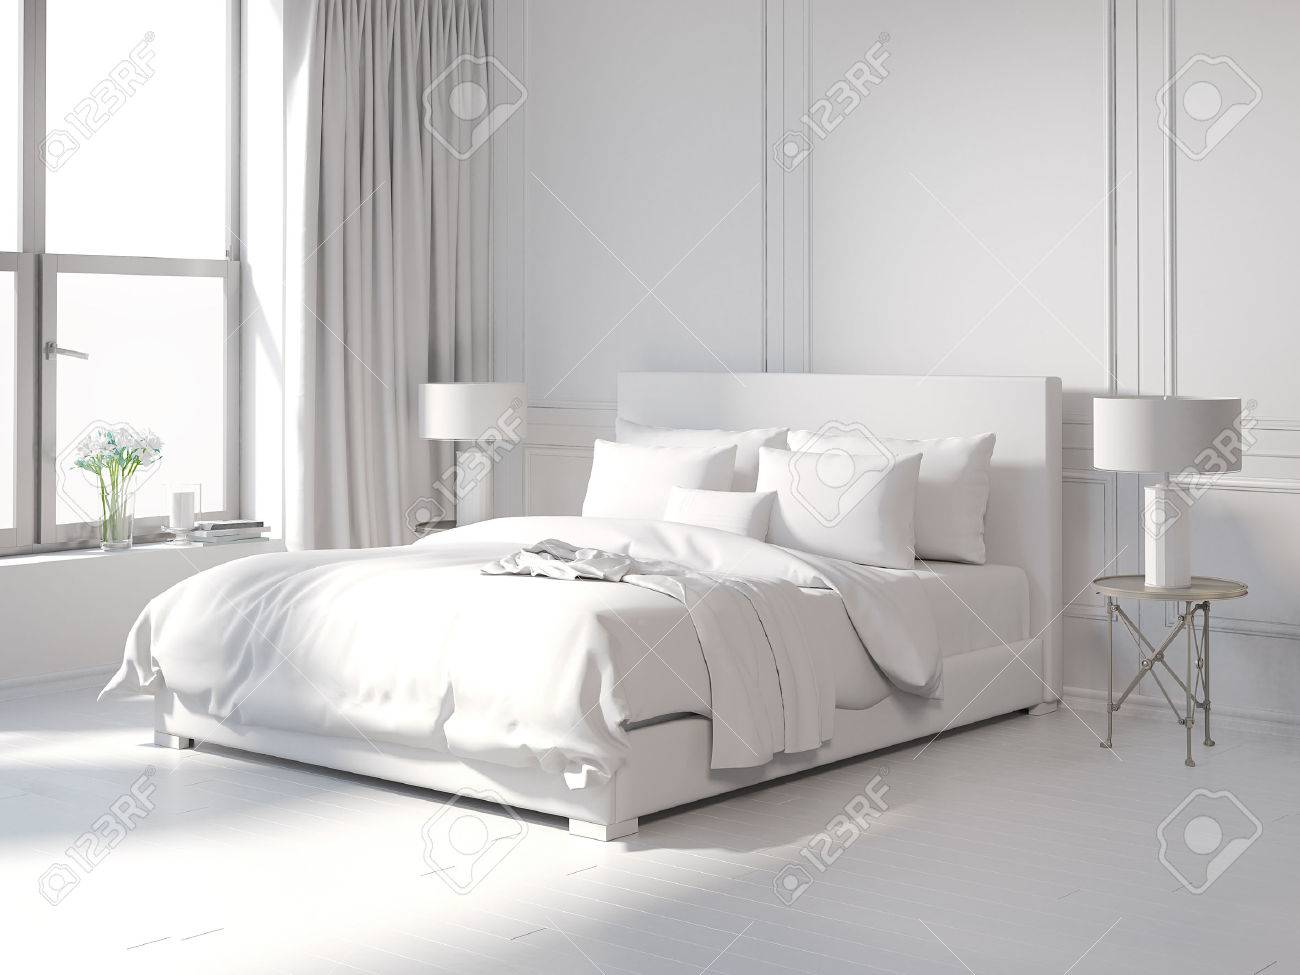 Contemporary All White Bedroom Stock Photo, Picture And Royalty Free ...